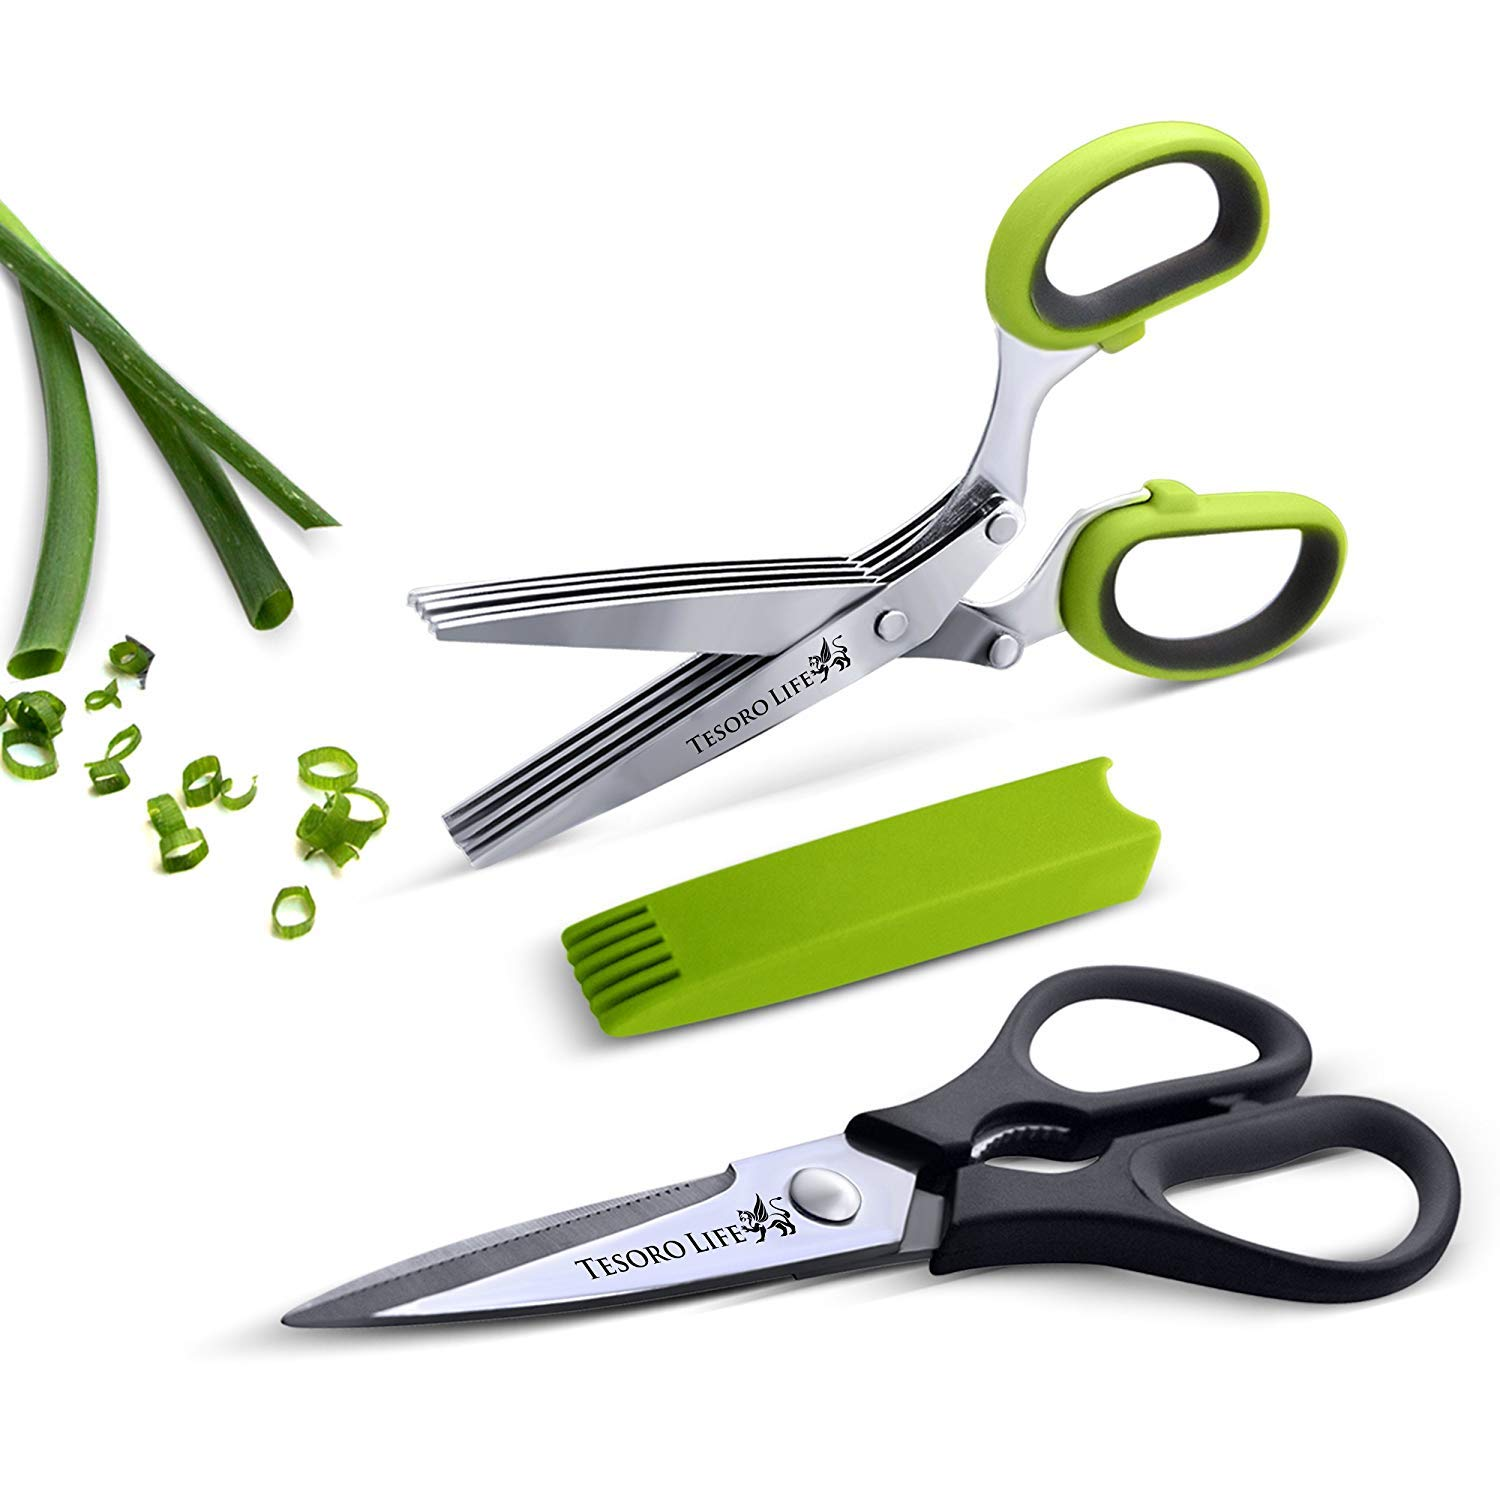 Kitchen Scissors with 5 Blade Herb Scissors, Cleaning Cover and Soft Grip Rubber Handles